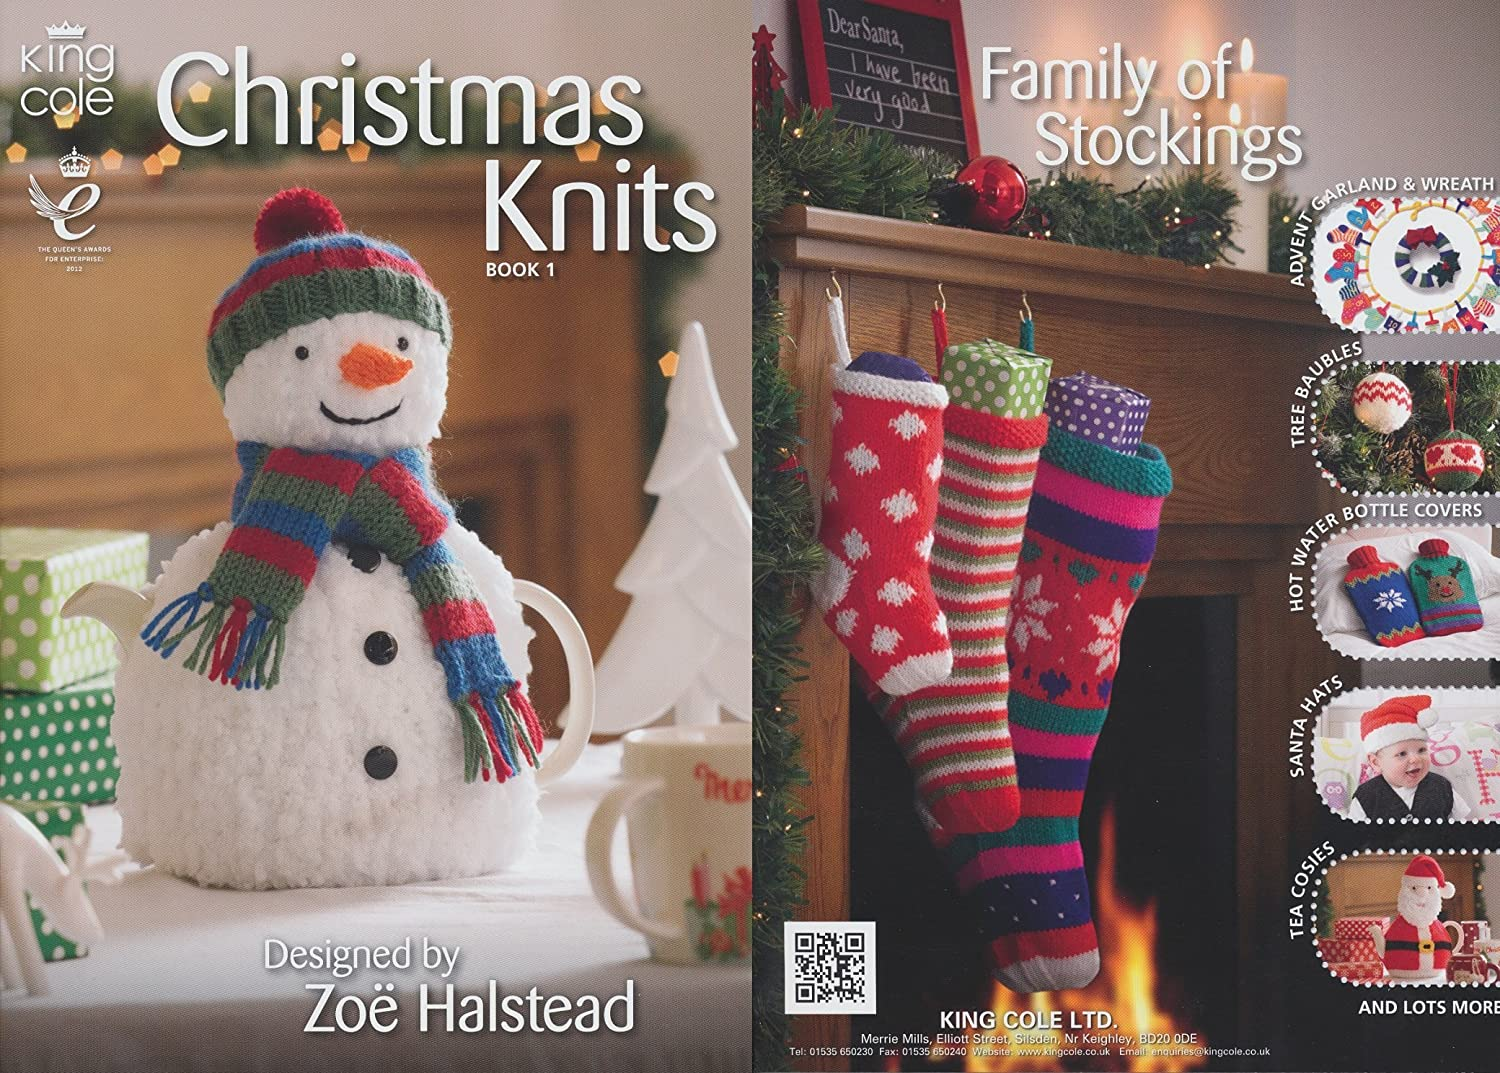 Amazon.com: King Cole Christmas Knits Knitting Book Double Knitting ...